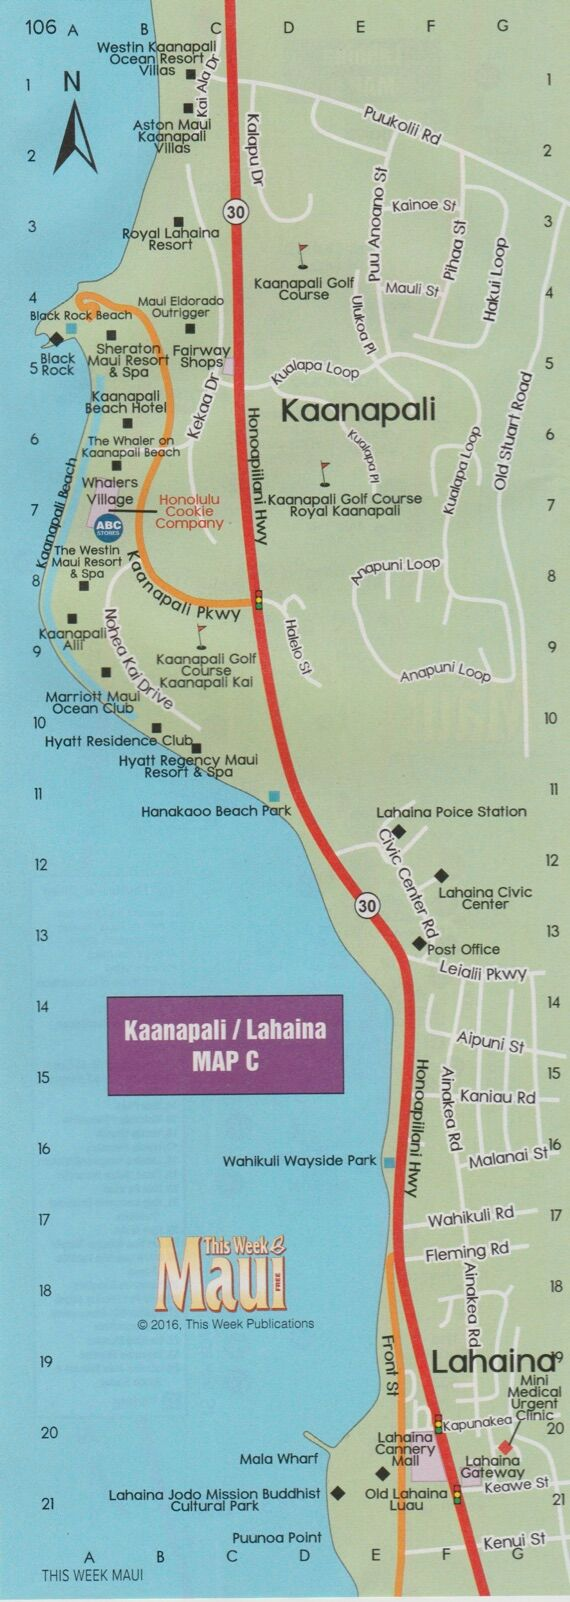 Kaanapali Beach Resort Map - Picture Ideas References on lanai beach map, maluaka beach map, keawakapu beach map, kapalua map, hanalei beach map, north shore beach map, maui map, myrtle beach hotel map, hawaii map, napili beach map, hapuna beach map, lahaina map, kapaa beach map, kihei beach map, waianae beach map, hilo map, paia beach map, hamoa beach map, kauai map, lanikai beach map,